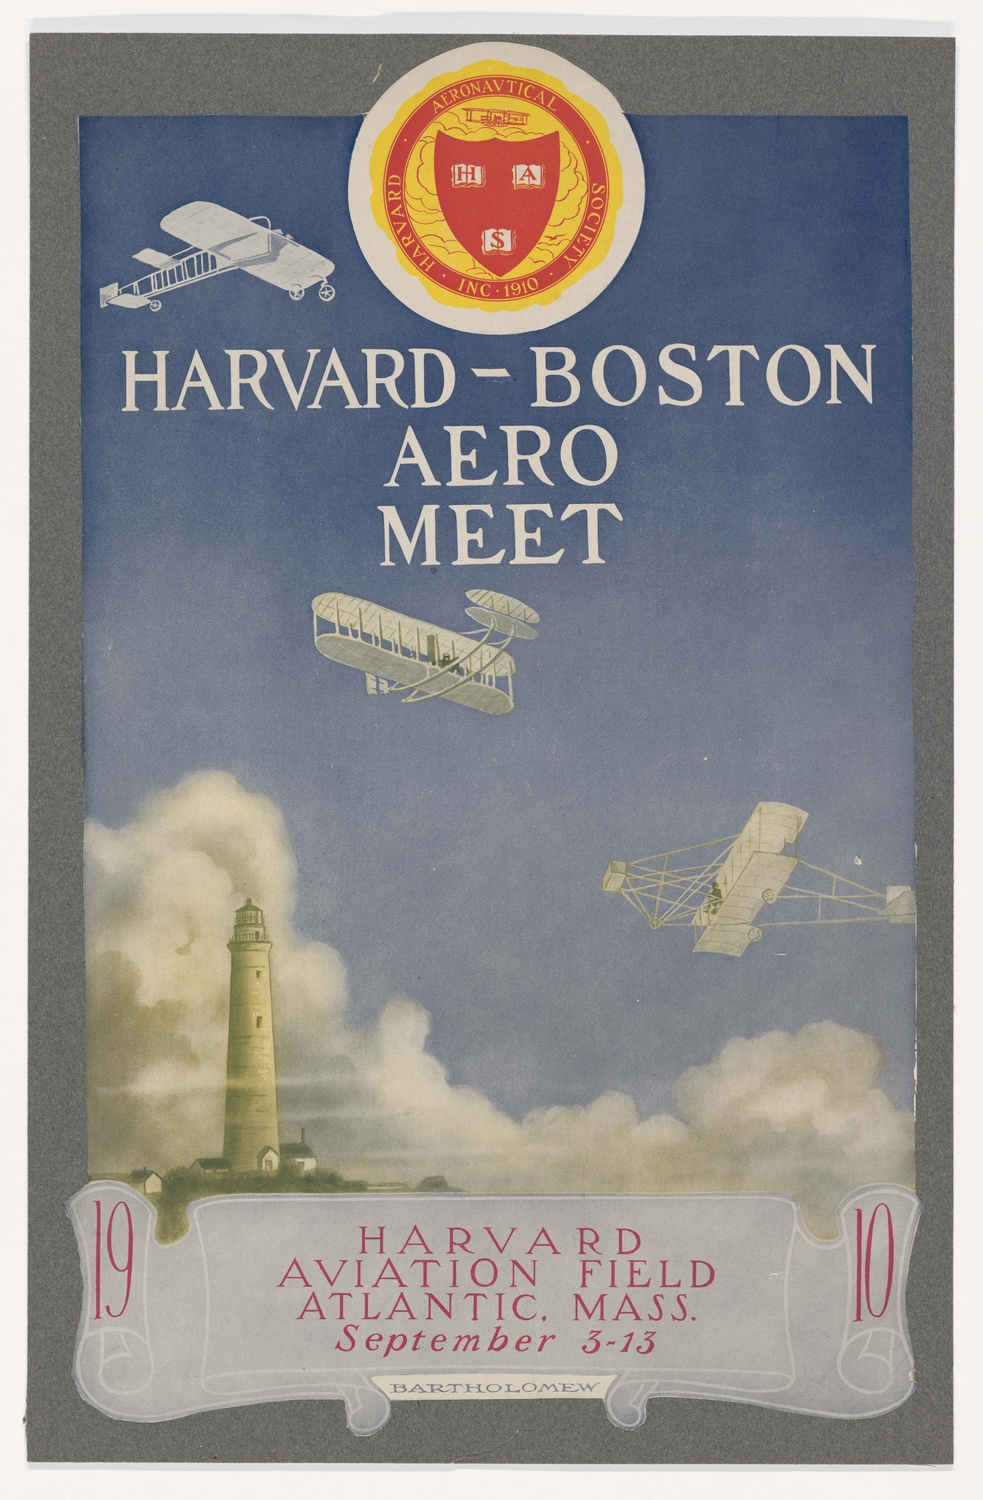 Poster of the Harvard-Boston Aero Meet, Harvard Aviation Field, Atlantic, Mass., September 3-13, 1910. 